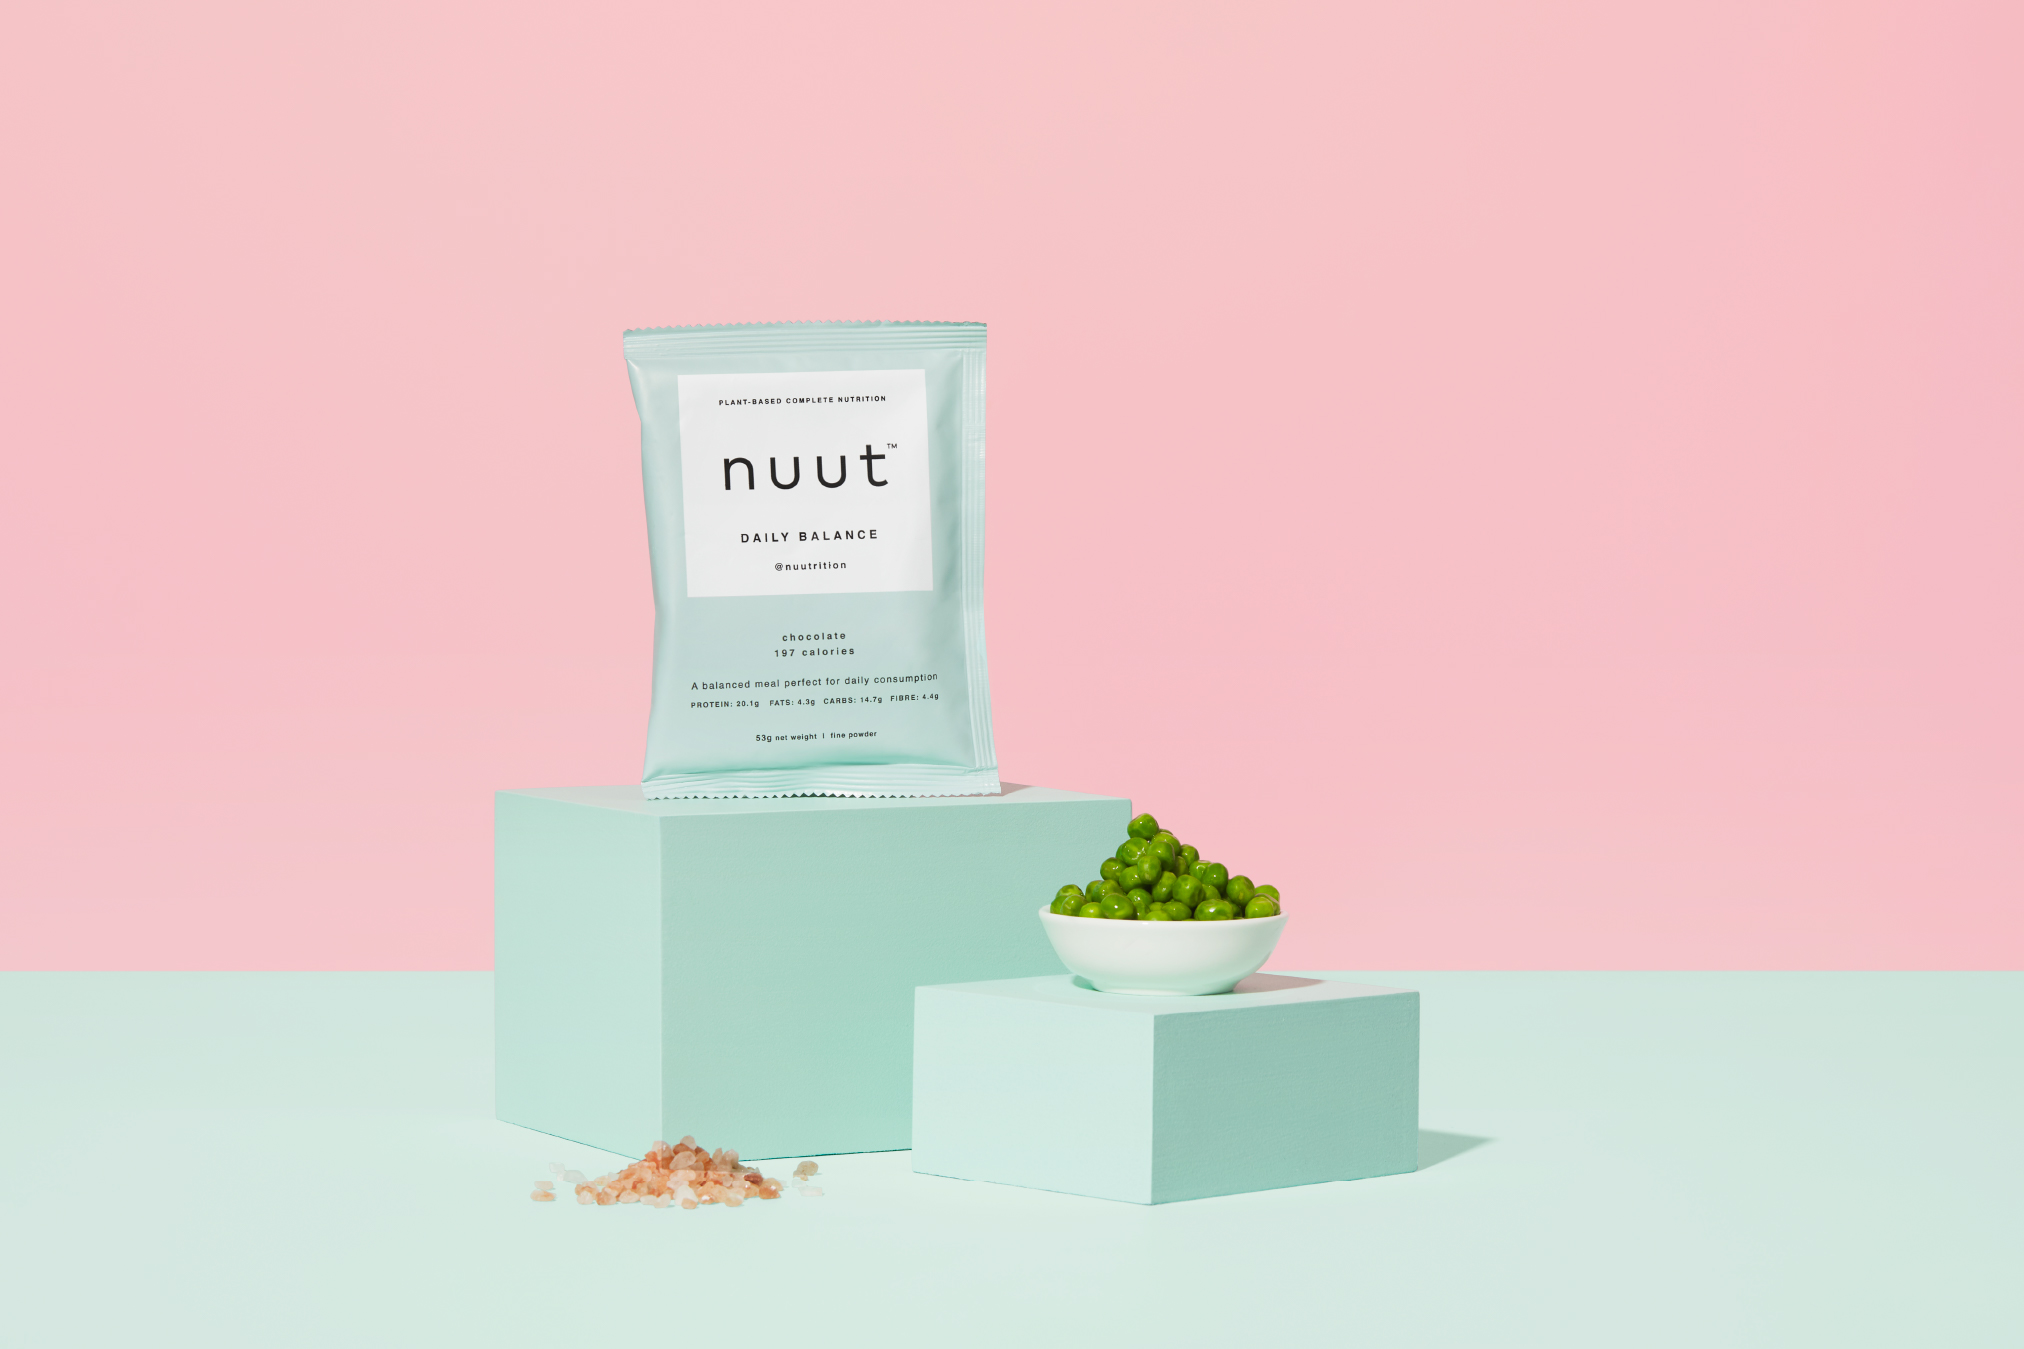 Perth Product Photography - Nuut